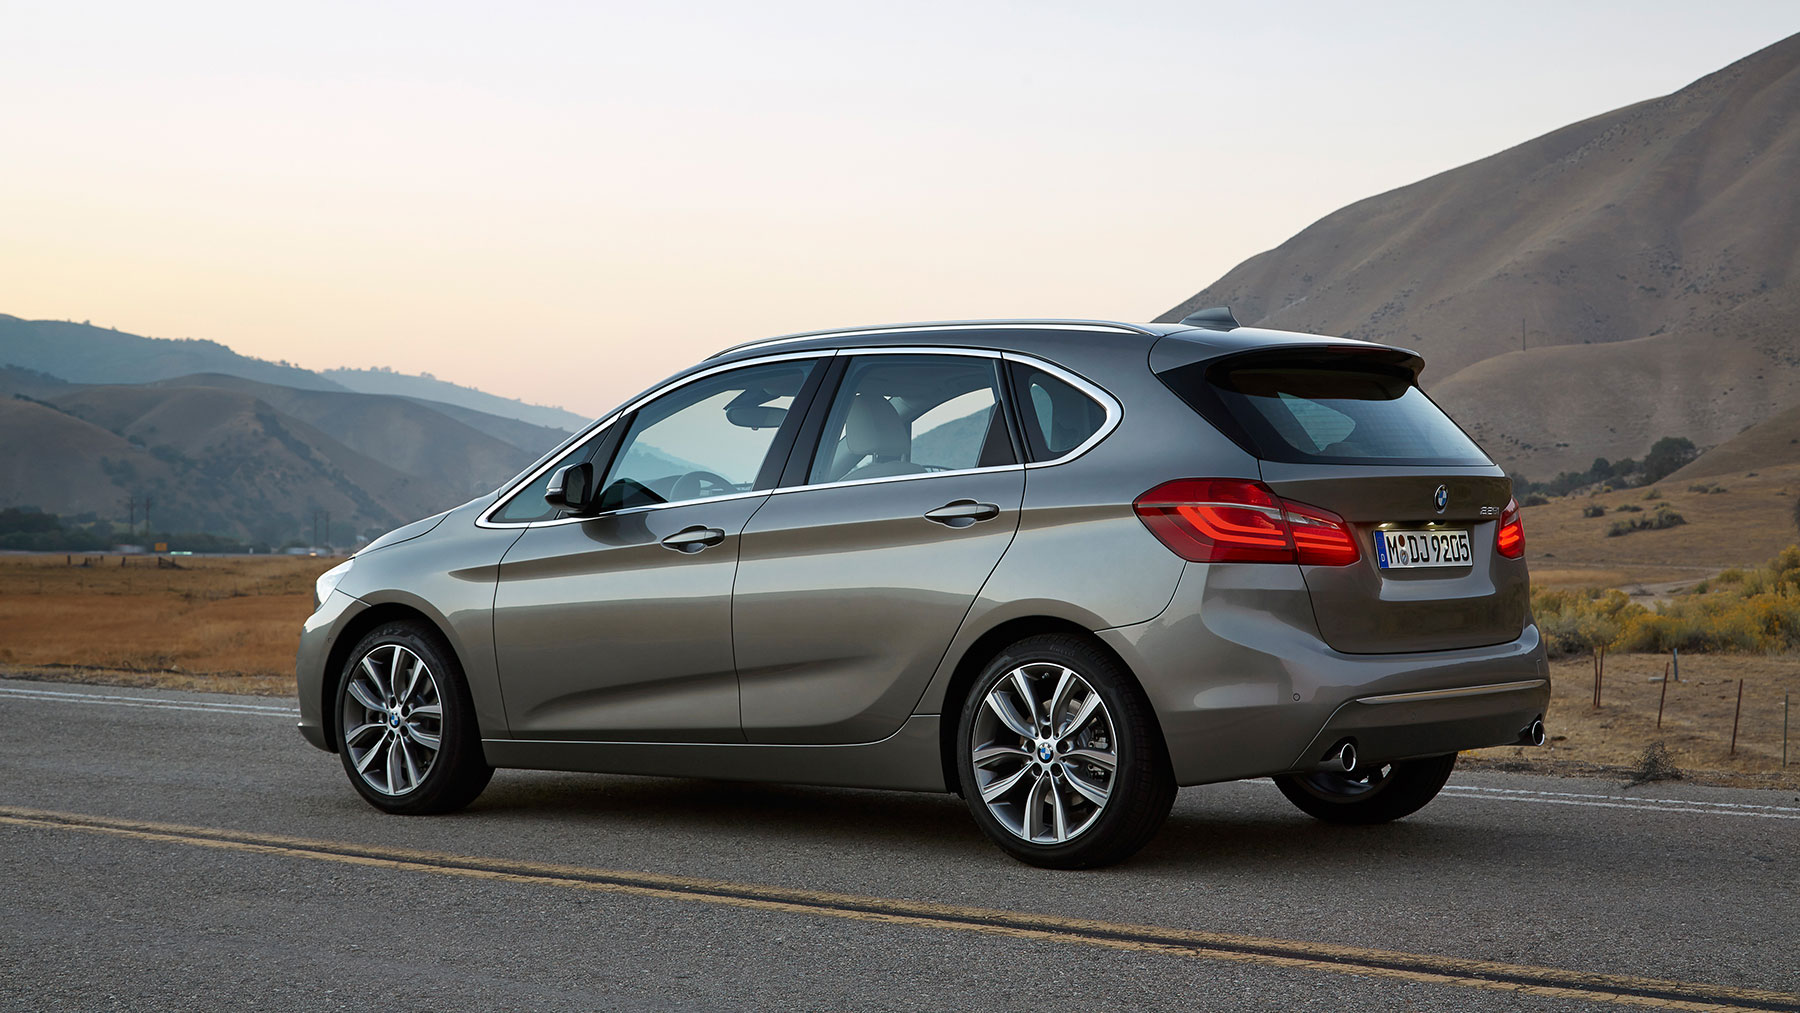 BMW 2 series Active Tourer 218i 2014 photo - 1